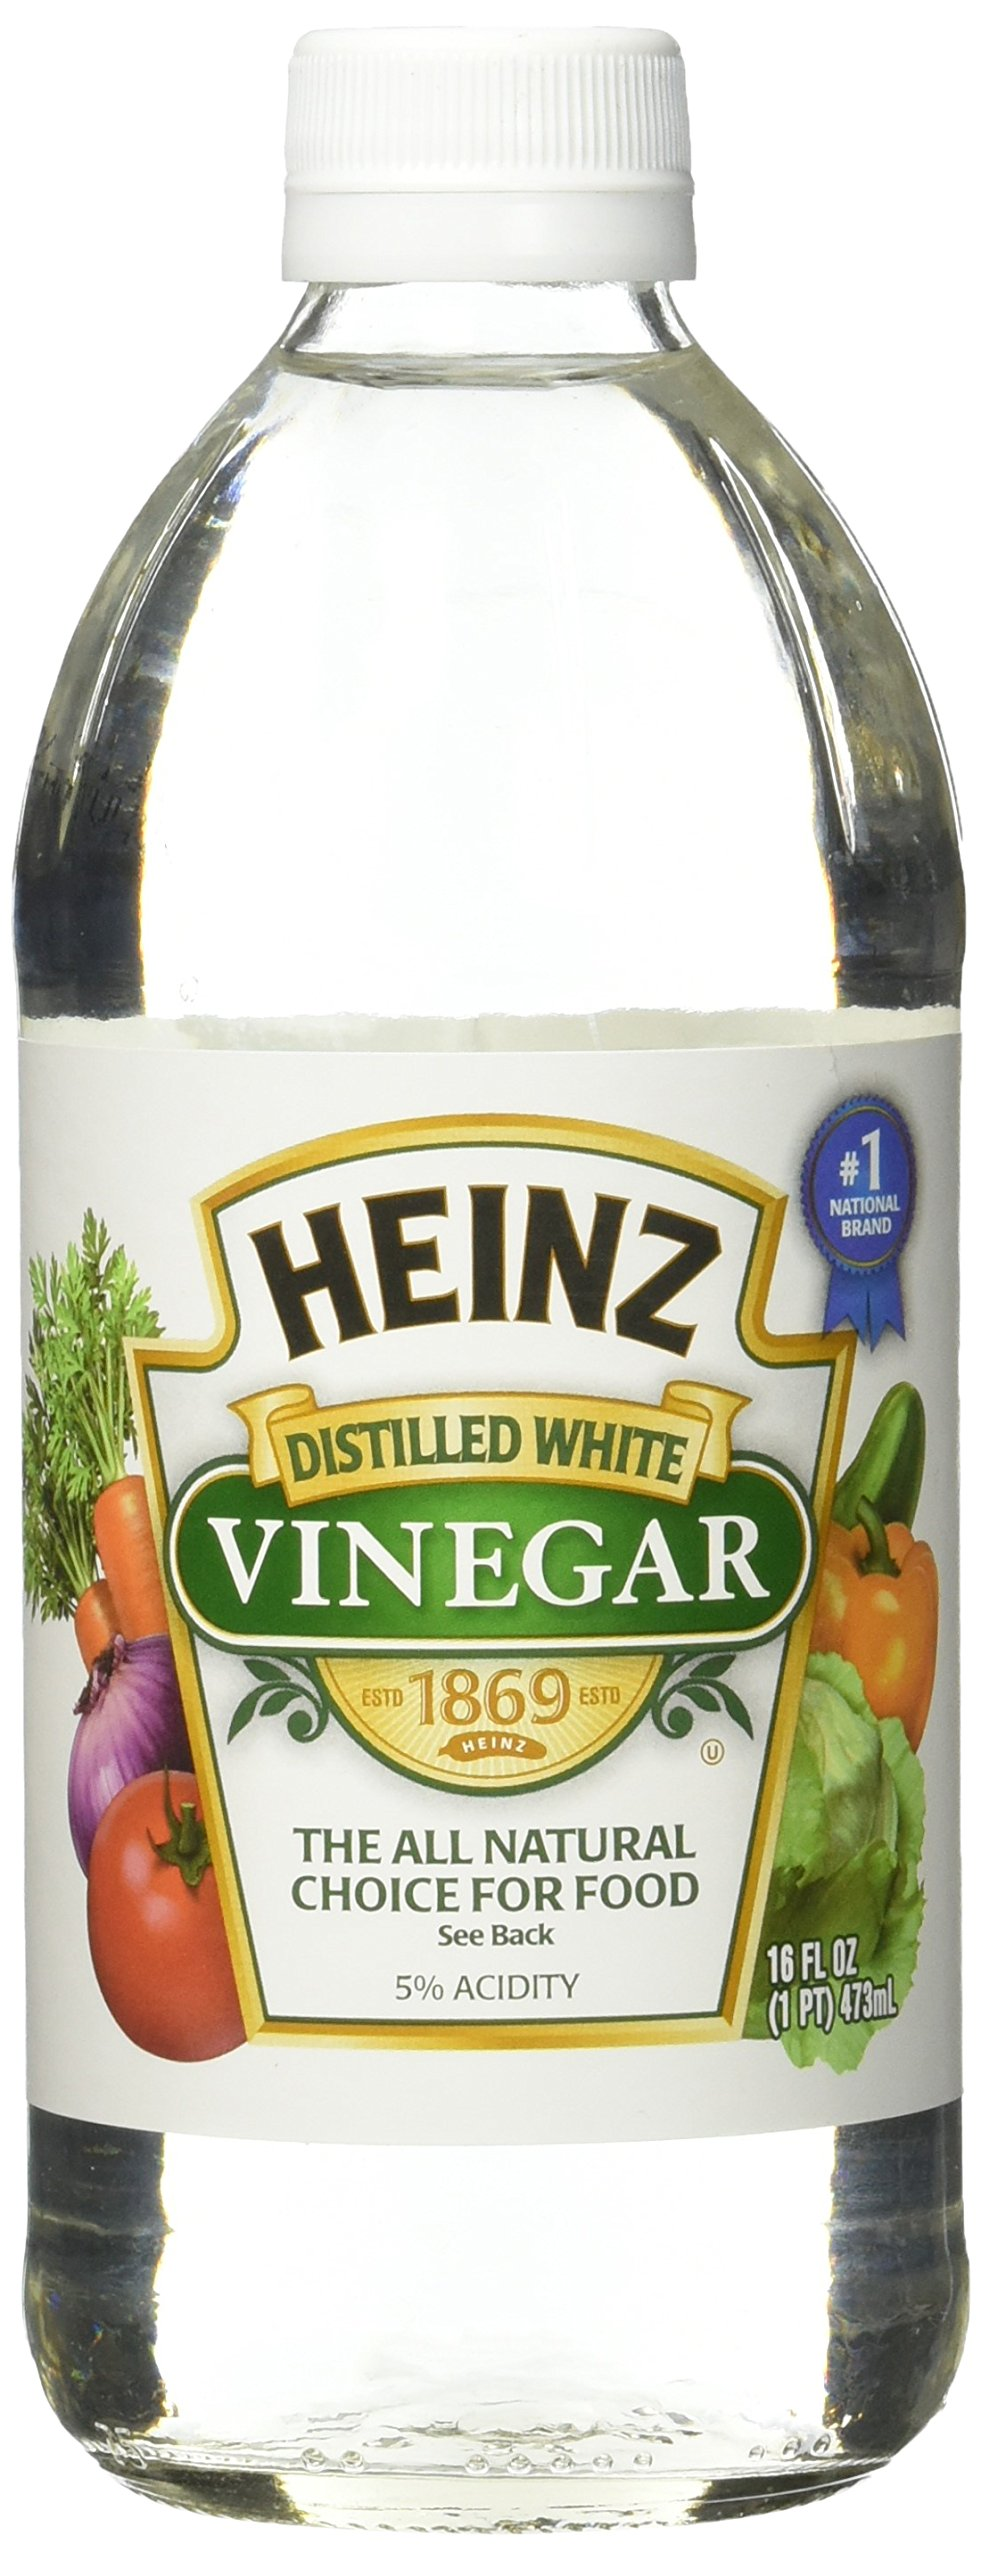 Heinz Distilled White Vinegar 16 oz (Pack of 12) by Heinz